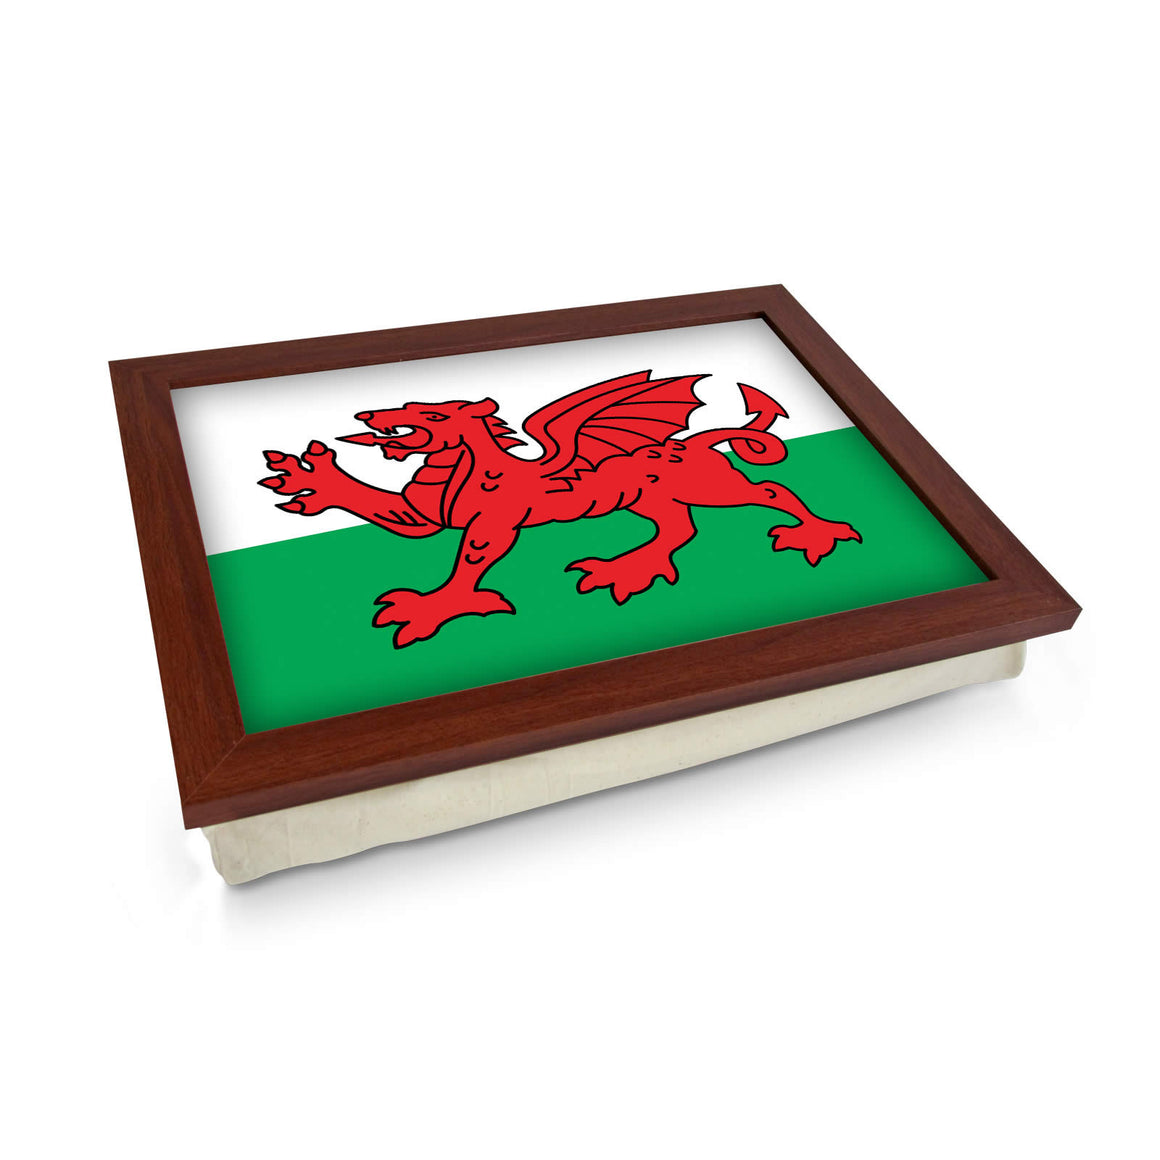 Welsh Red Dragon Lap Tray